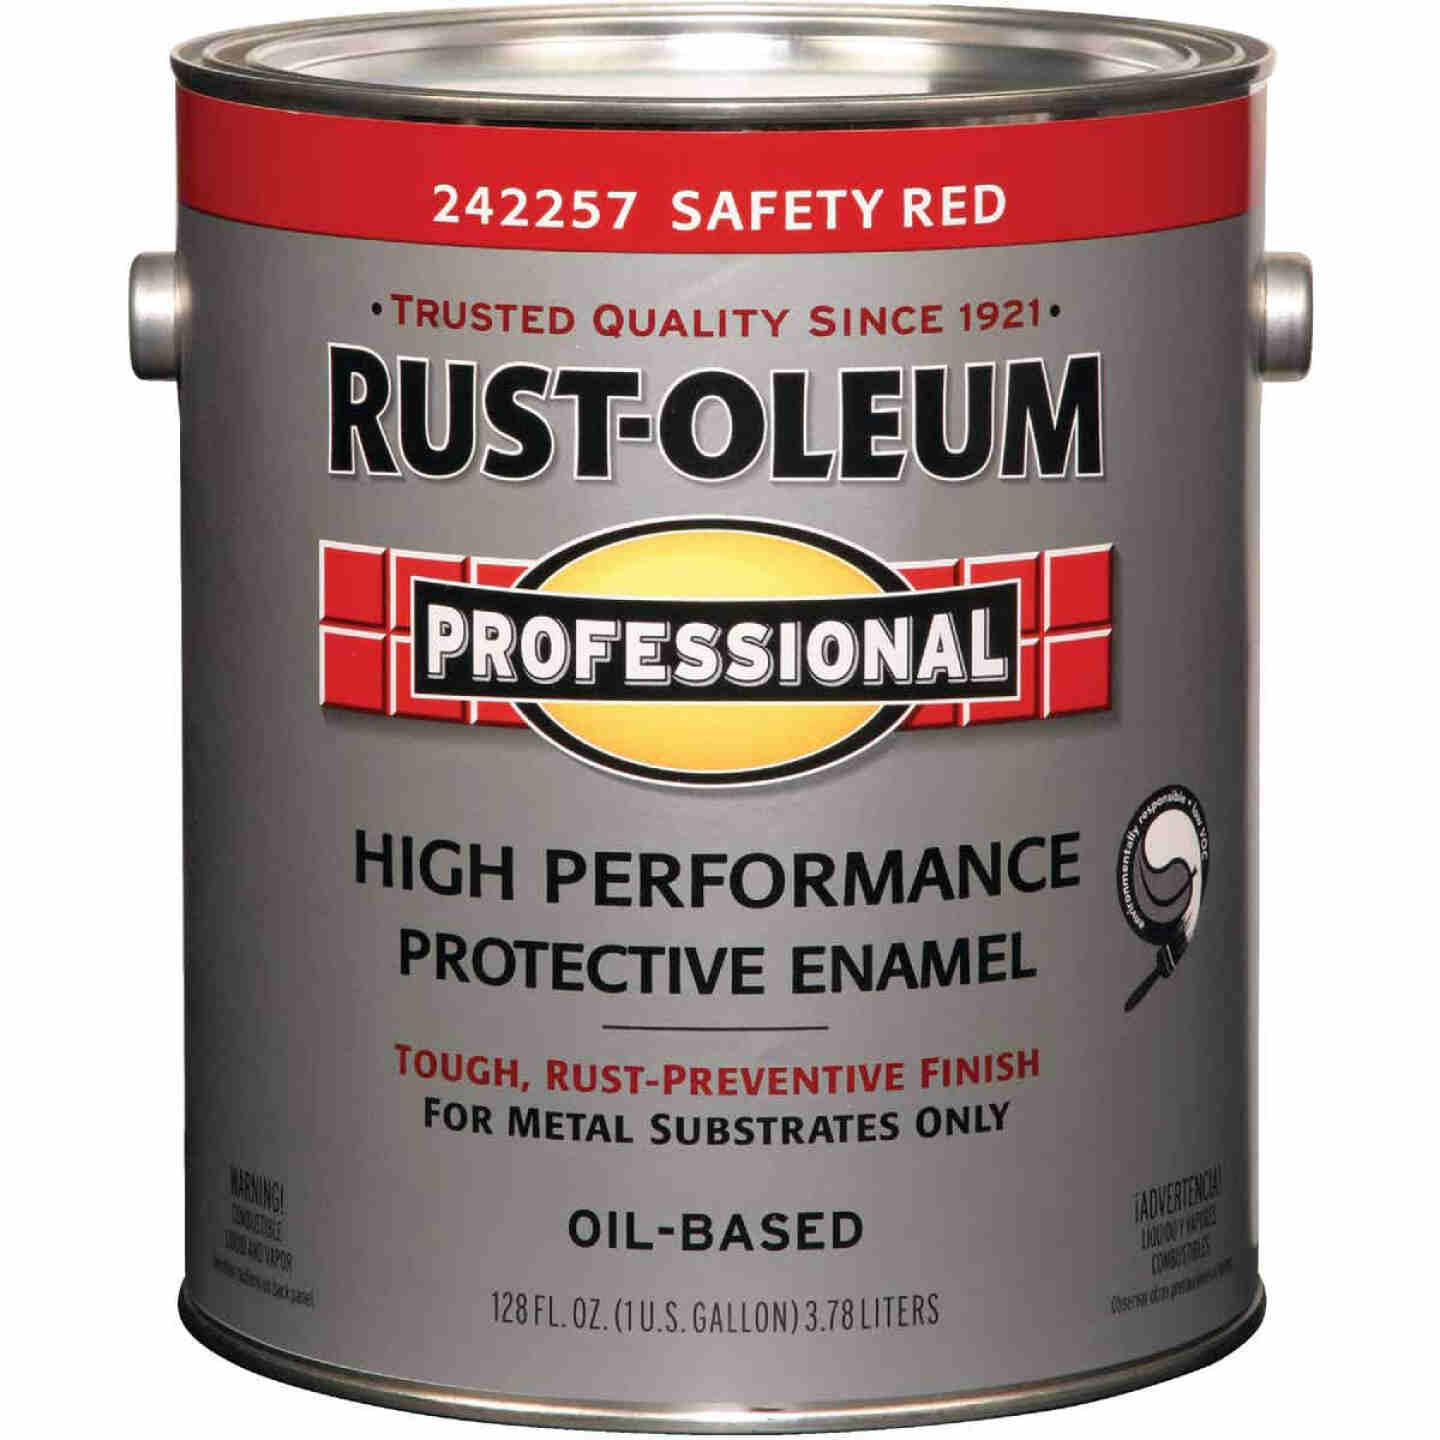 Rust-Oleum Gloss VOC for SCAQMD Professional Enamel, Safety Red, 1 Gal. Image 1